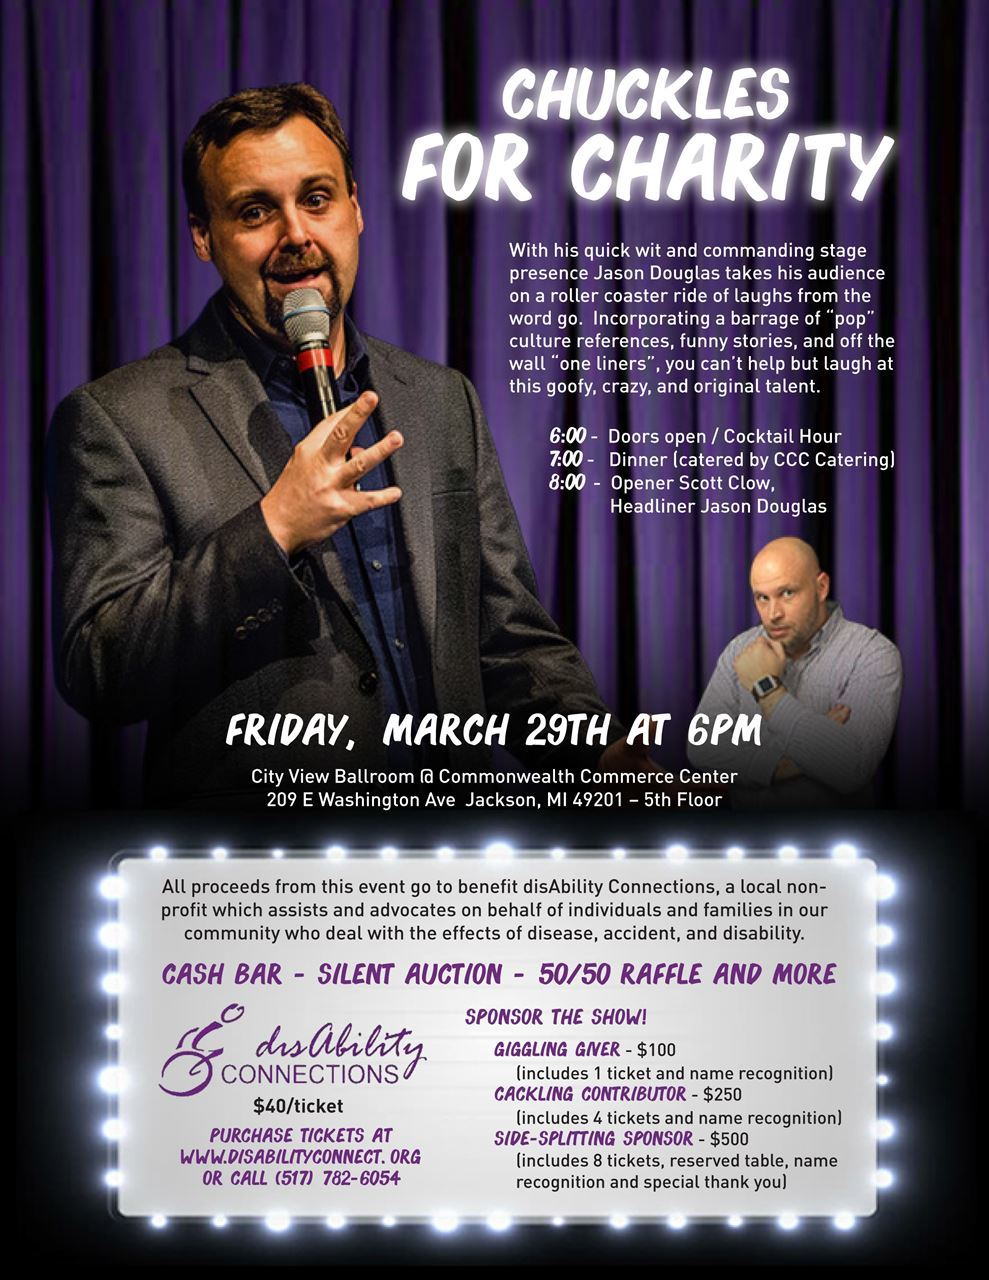 Chuckles for Charity fundraiser on March 29 at 6PM.  tickets are $40 for entry and dinner.  Cash bar, silent auction, raffle and more